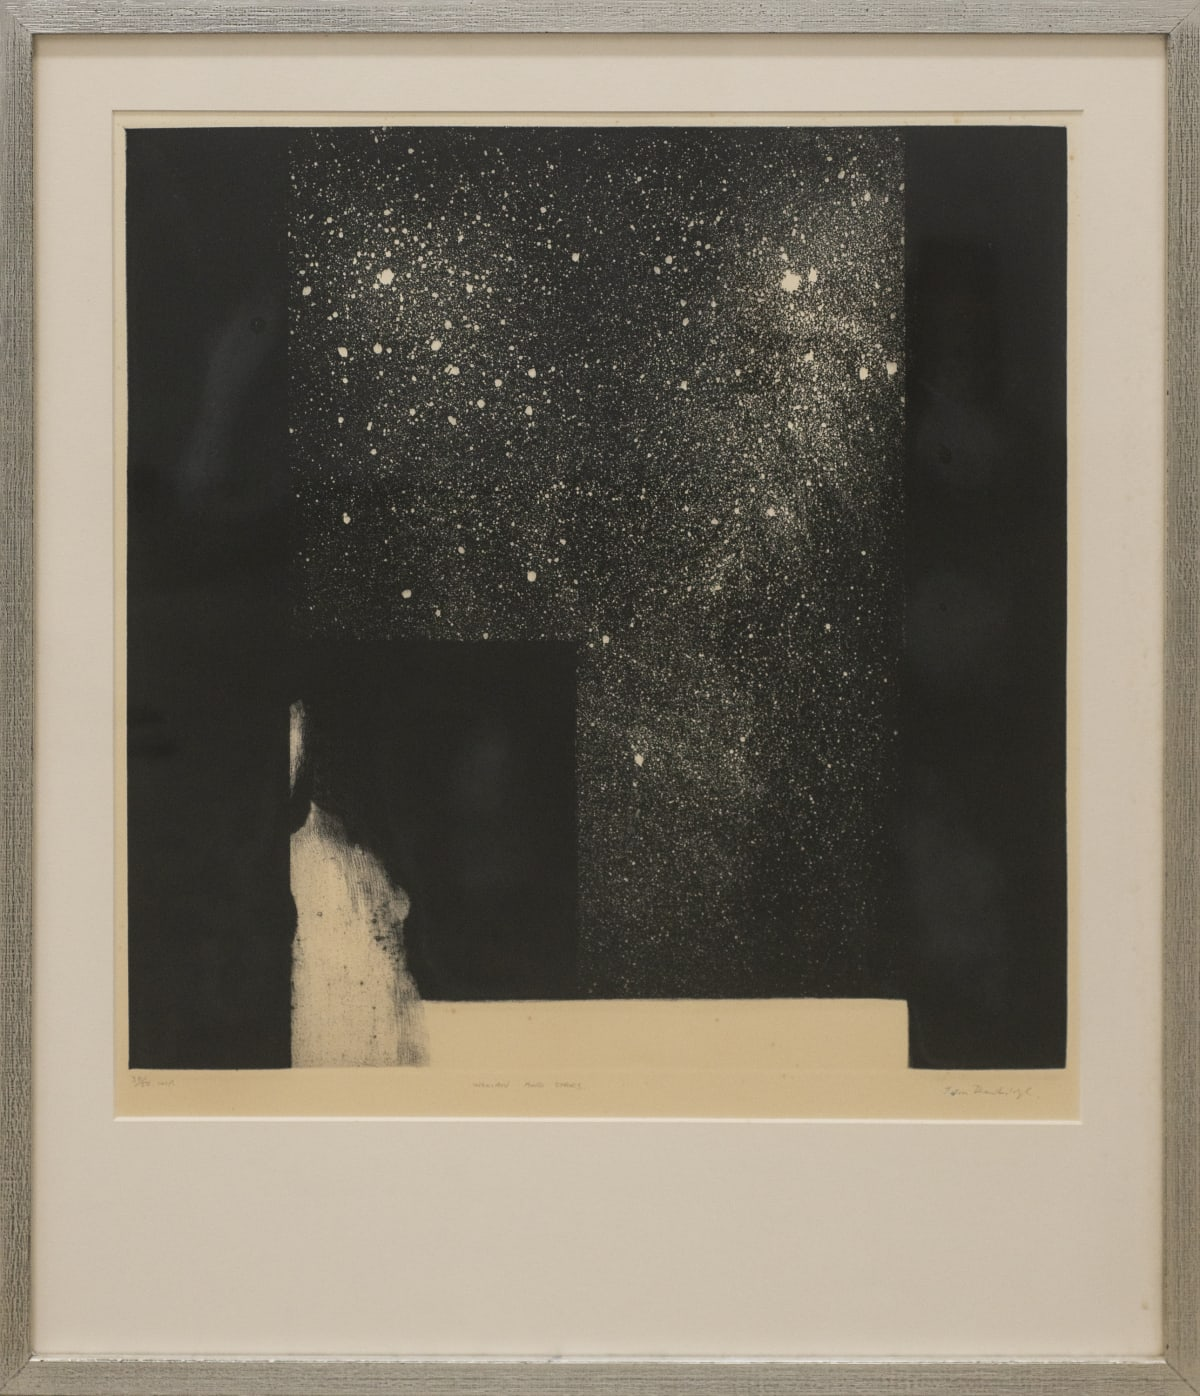 John Drawbridge, Woman and Stars, 30/50 (Framed), n.d.